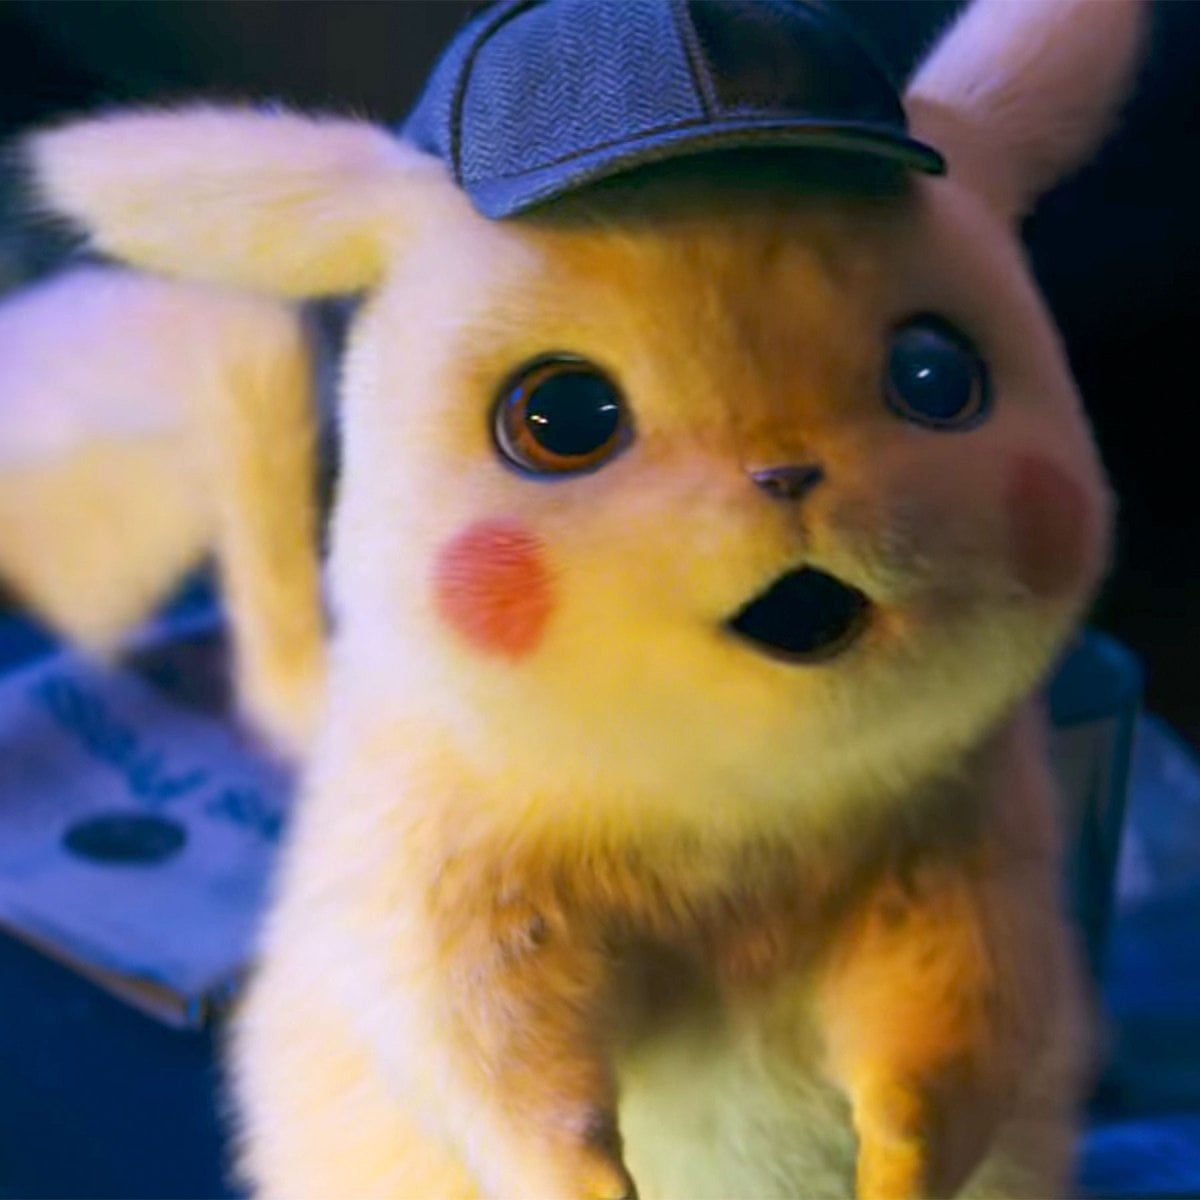 Detective Pikachu Why Fans Are So Upset About The New Pokemon